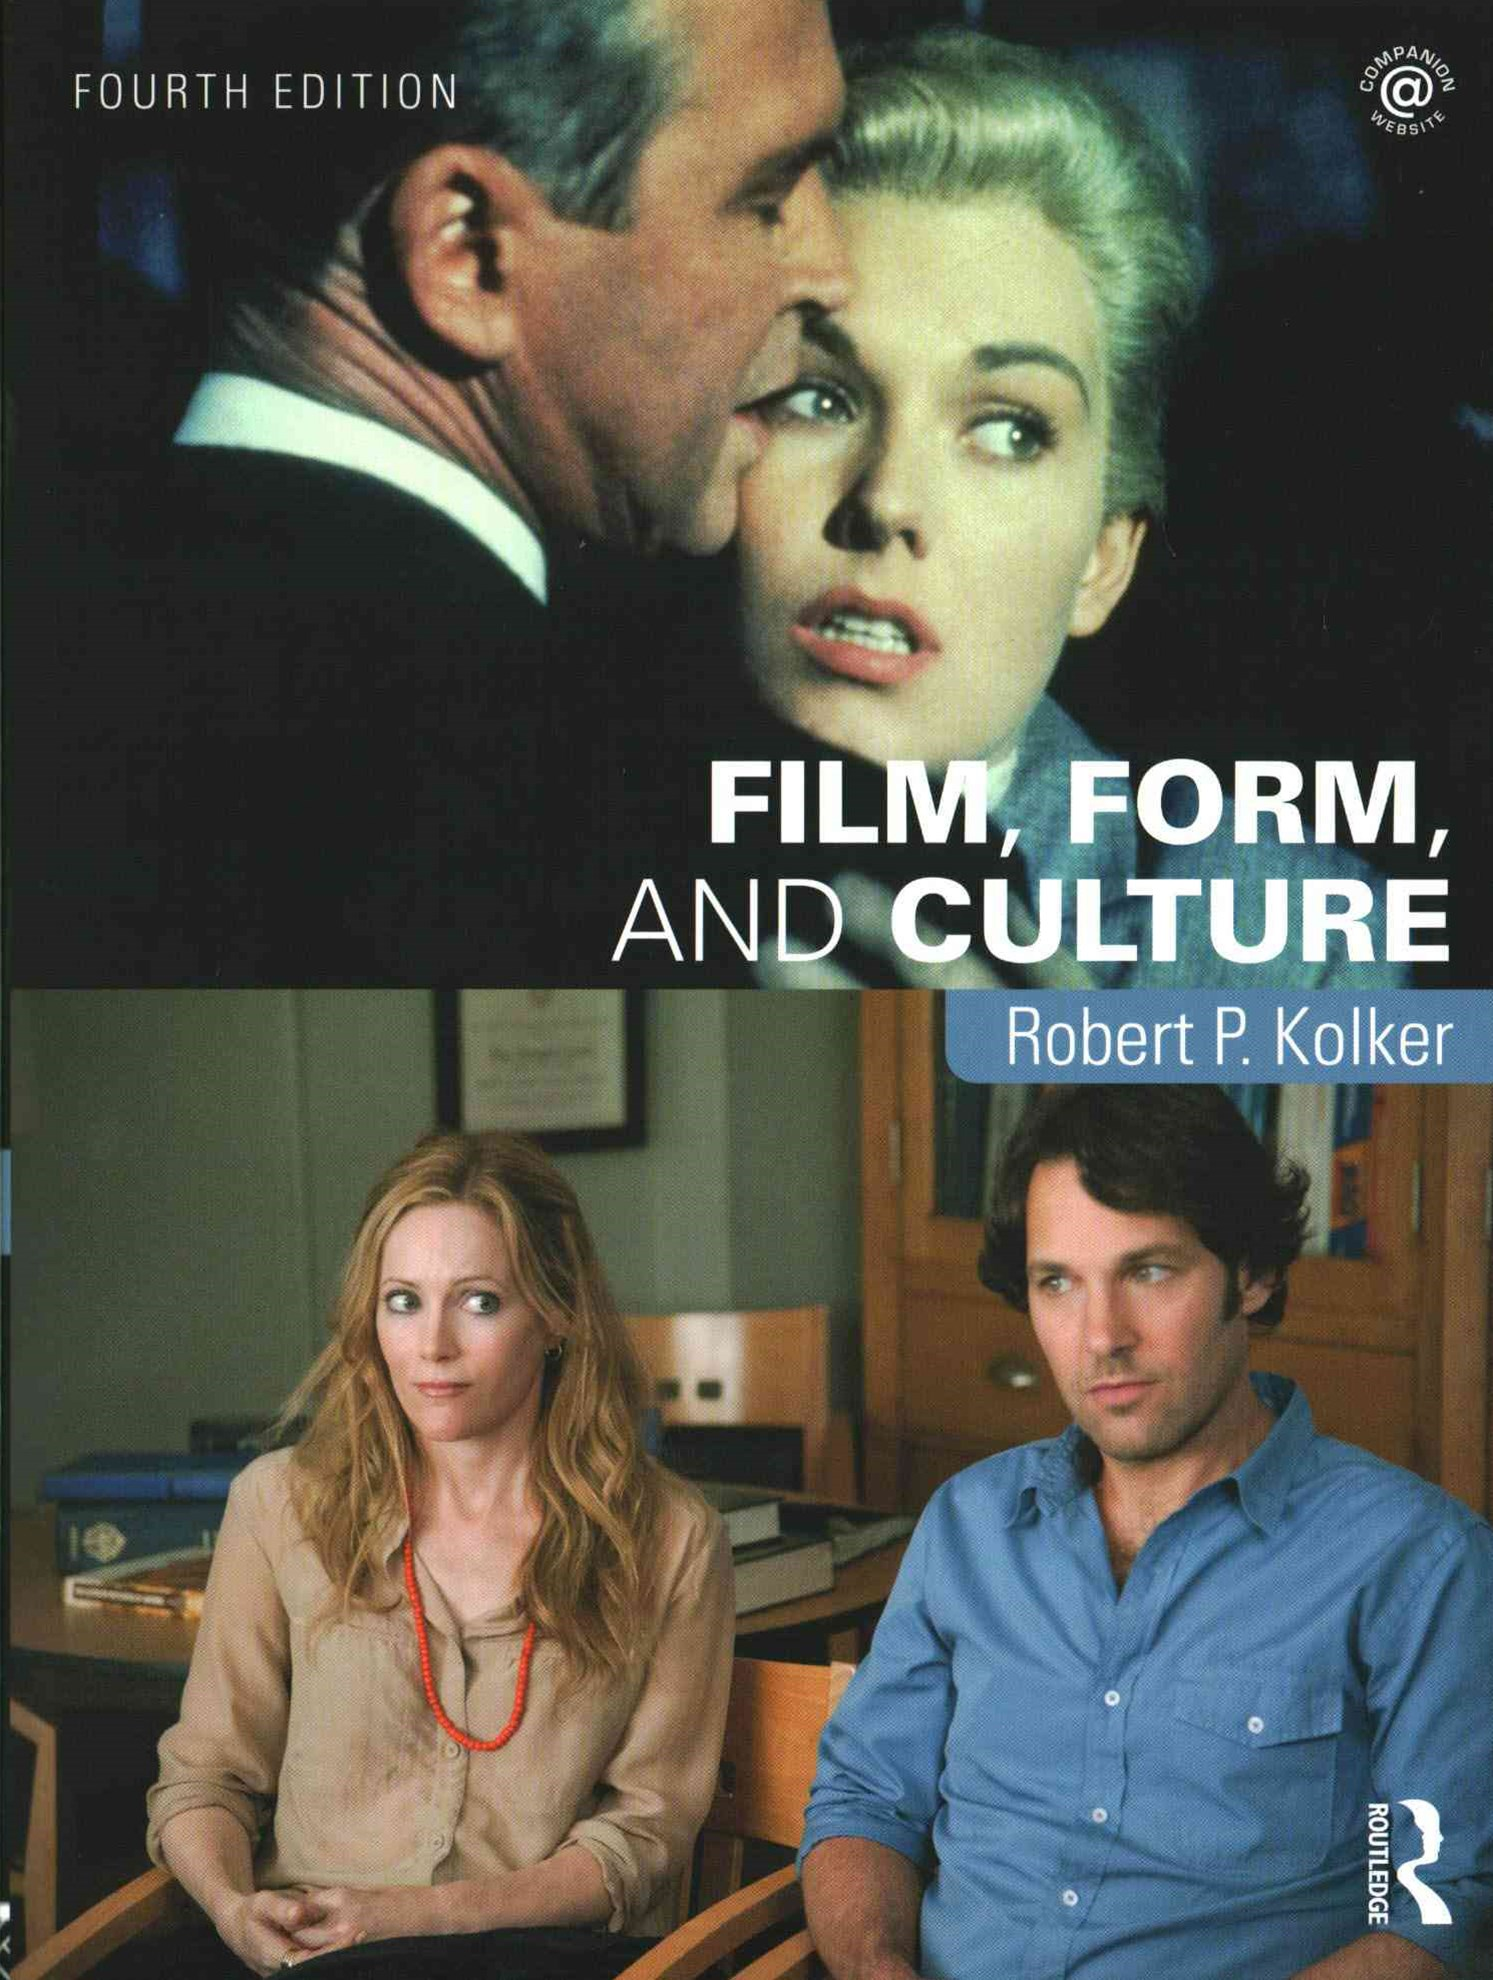 Film, Form, and Culture